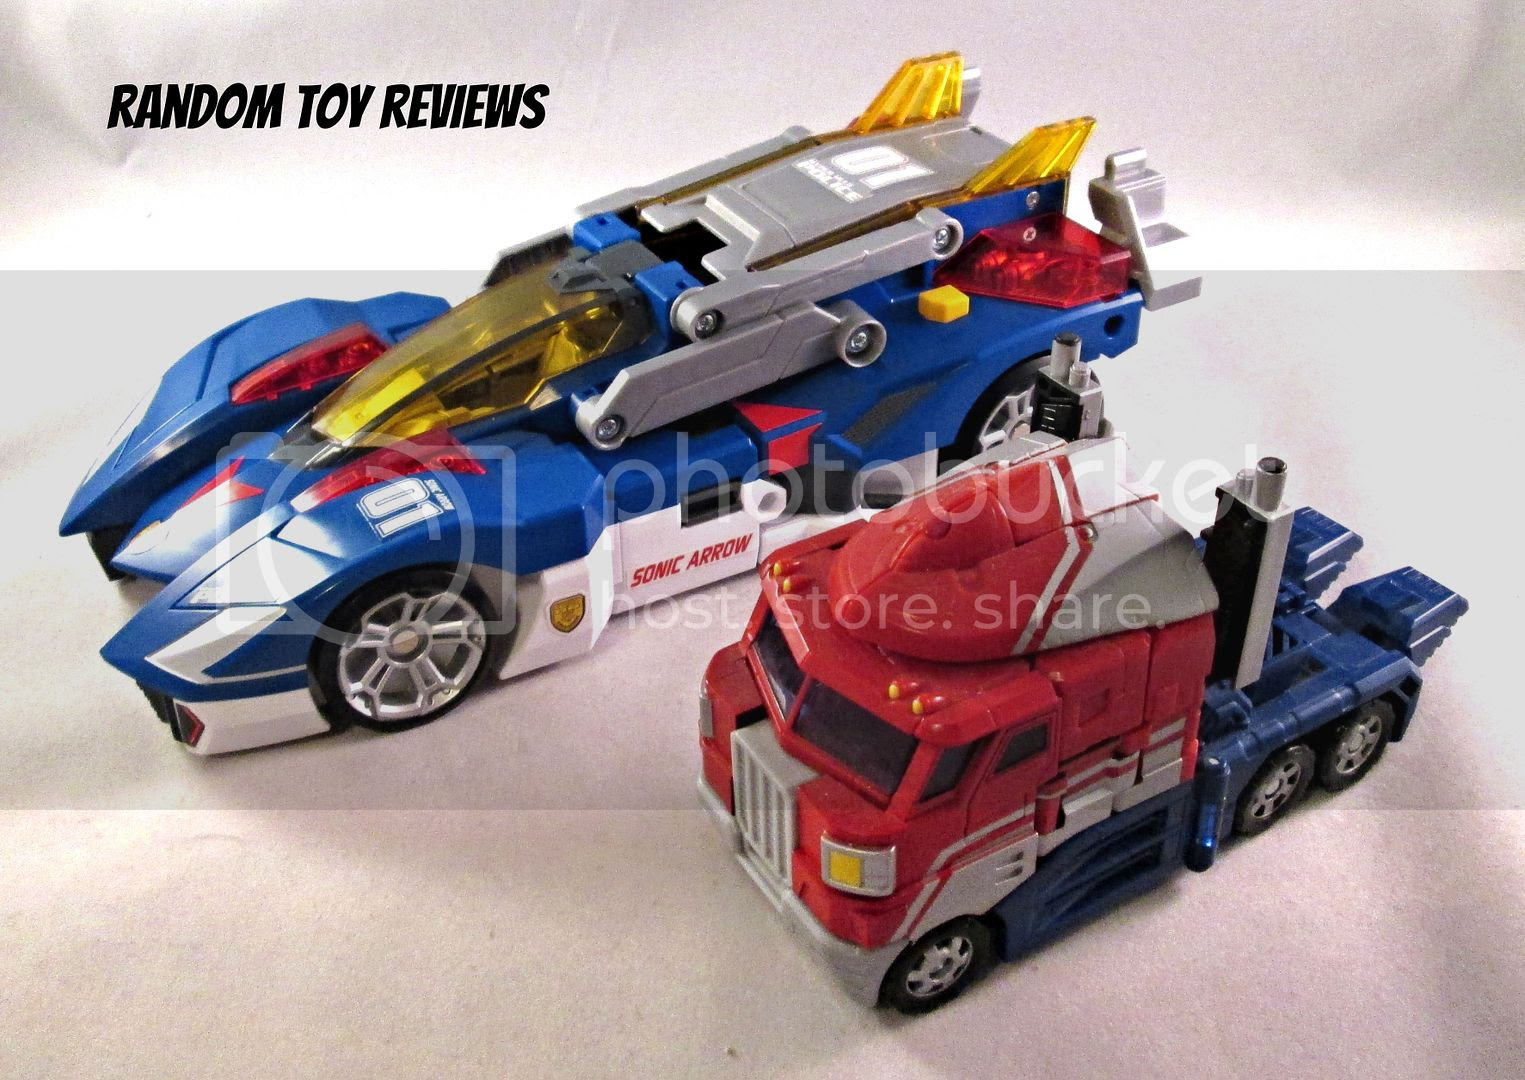 Tomica Hyper Police photo 014_zpsorw1qwha.jpg